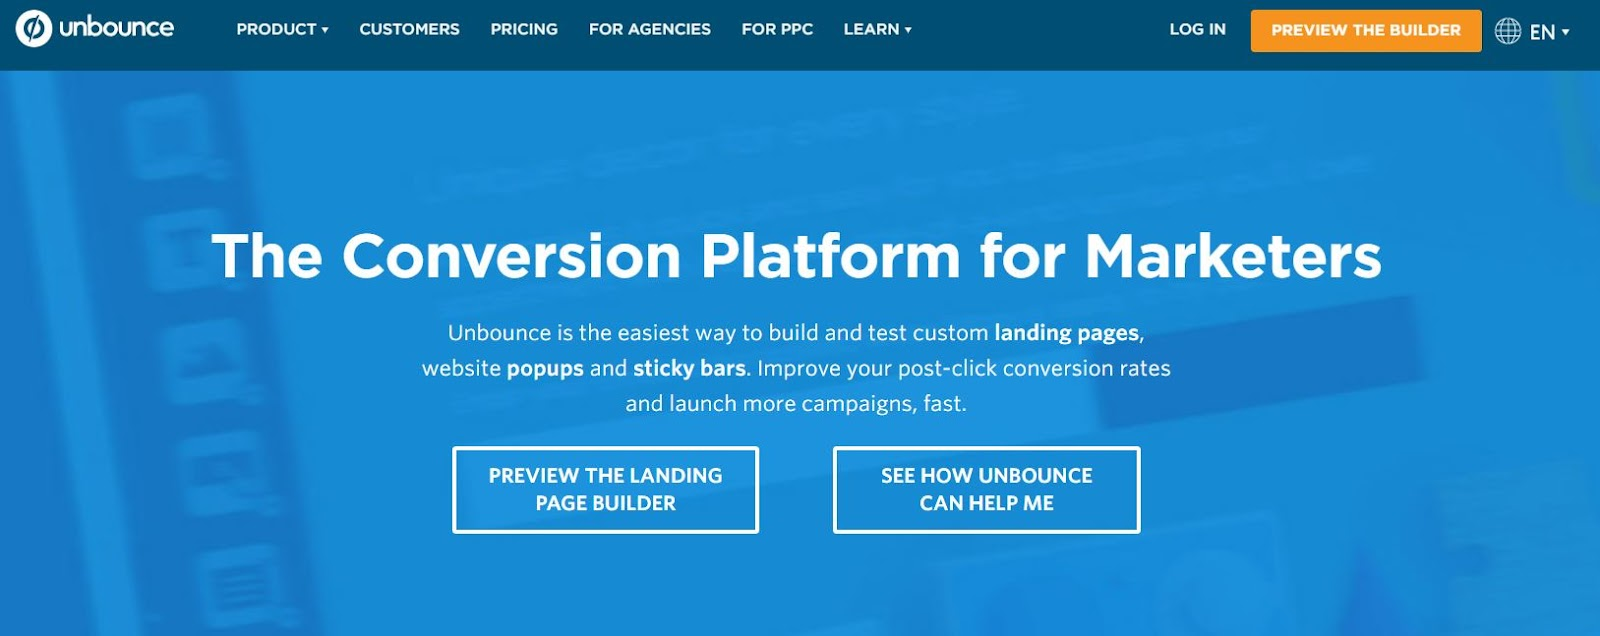 Unbounce Landing Page Picture